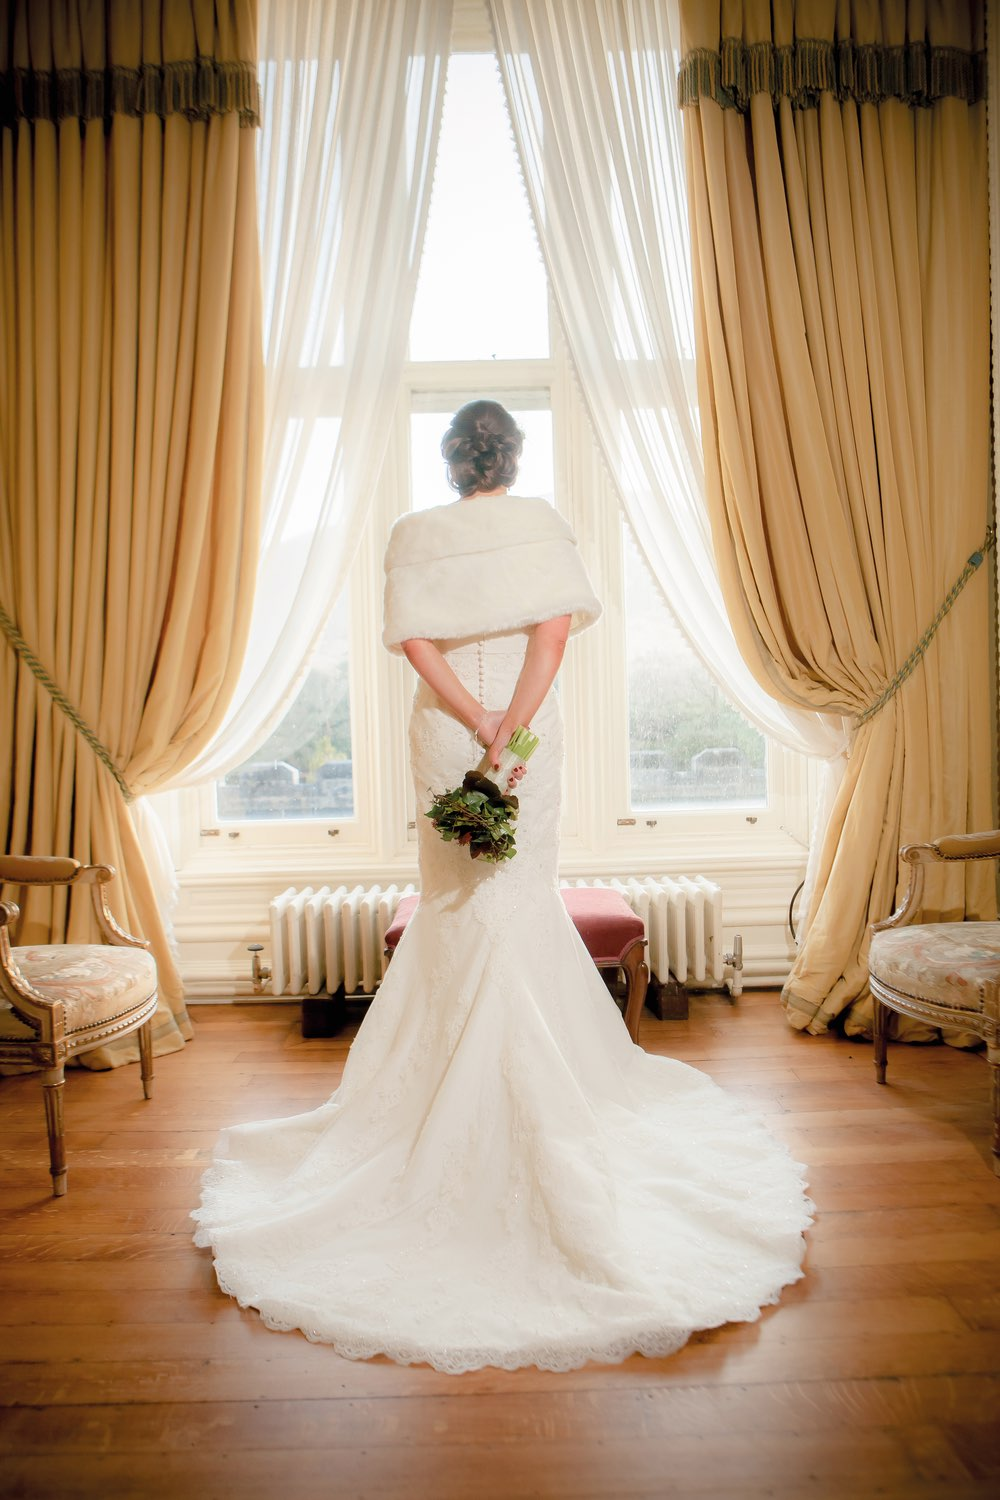 Ann-Marie Aspell gazing out the window in her wedding gown